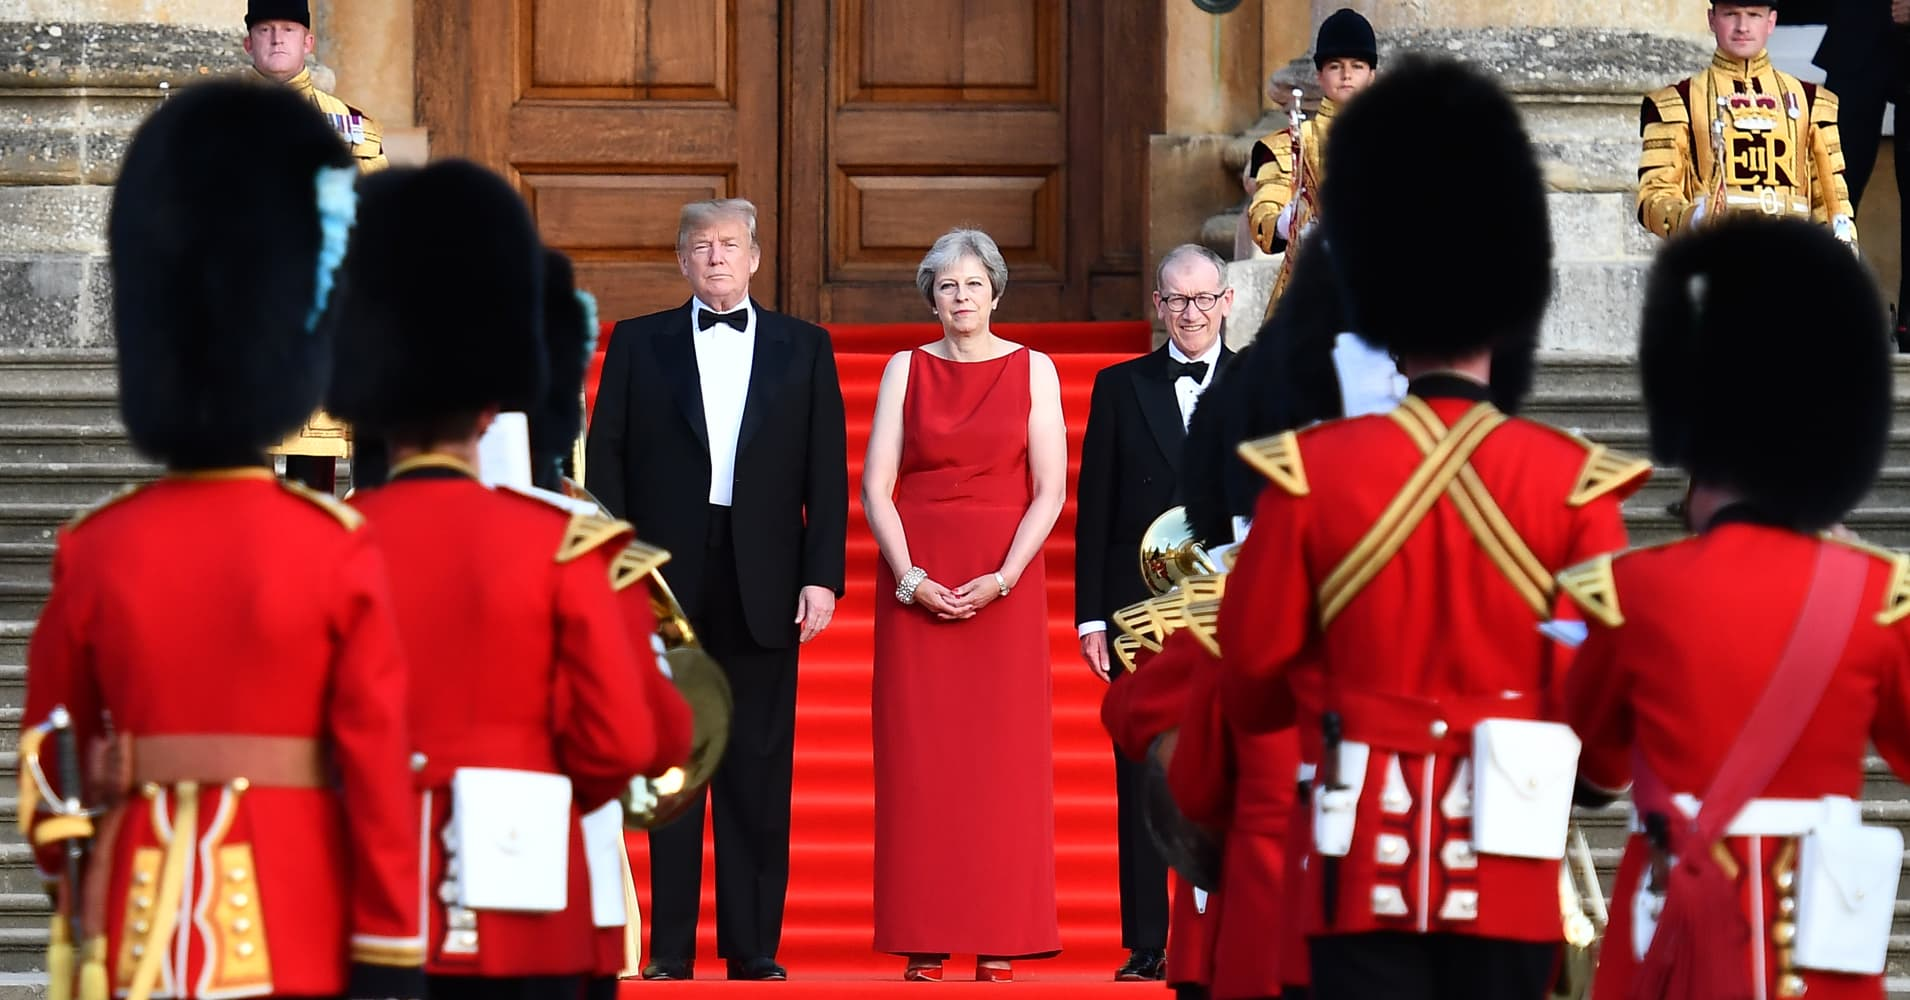 Even May's UK opponents are backing her against Trump